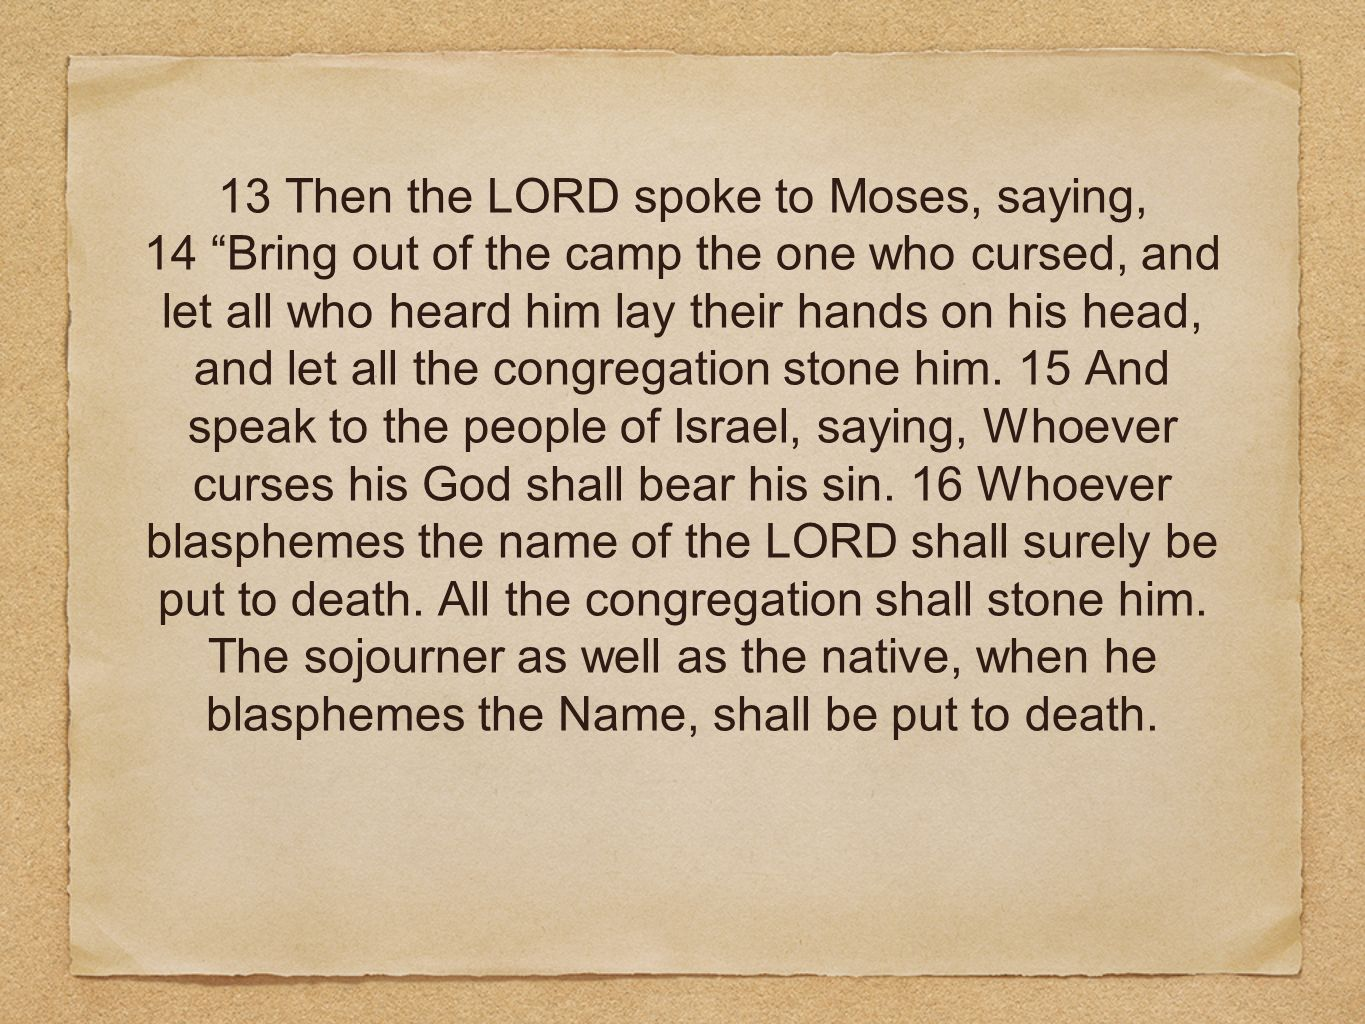 13 Then the LORD spoke to Moses, saying, 14 Bring out of the camp the one who cursed, and let all who heard him lay their hands on his head, and let all the congregation stone him.